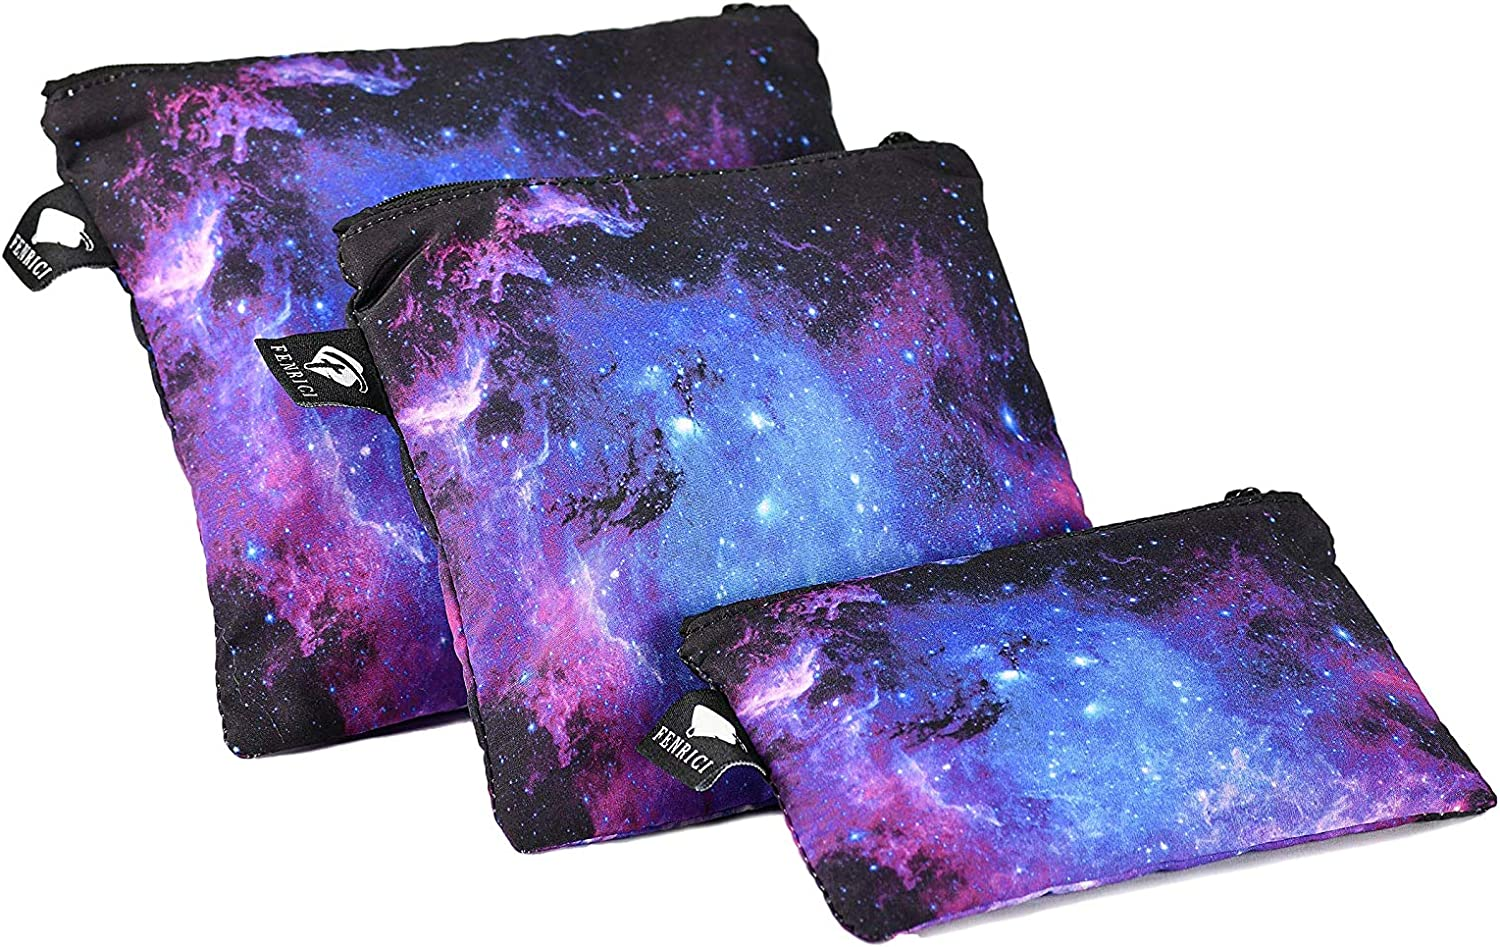 Reusable Sandwich Bags by Fenrici, Dishwasher Safe, BPA-Free, Food Safe, Eco Friendly, Snack Bags with Zipper, Preserves Snacks and Sandwiches, Lead-Free, Galaxy Purple (3 Pack)